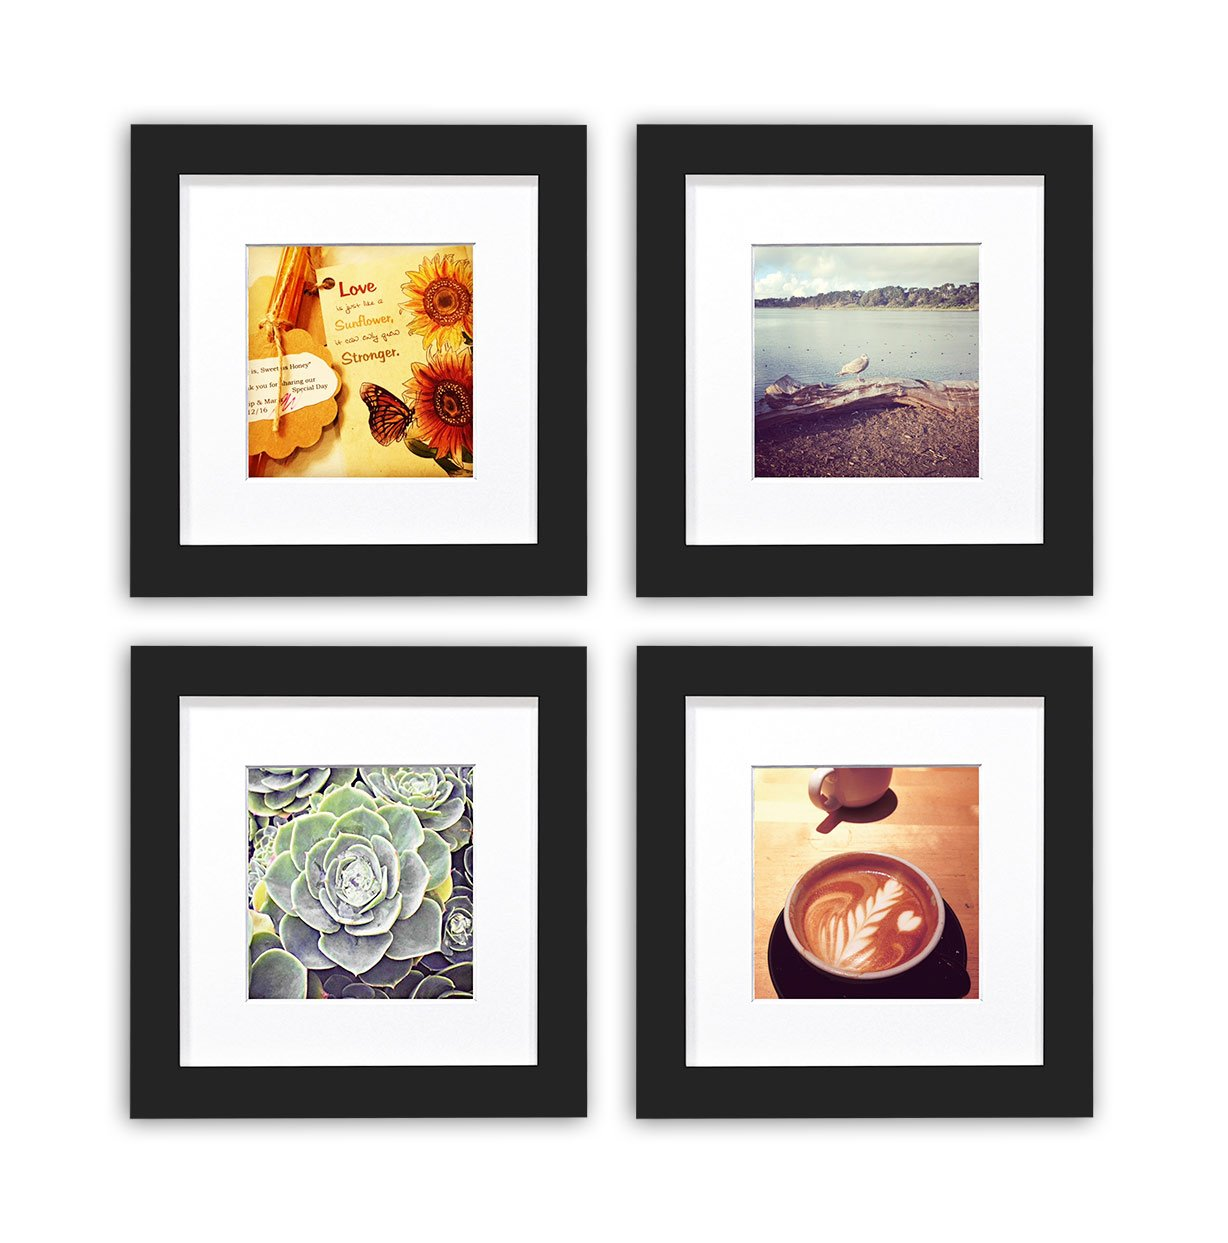 Golden State Art, Smartphone Instagram Frames Collection, 6x6-inch Square Photo Wood Frames with White Photo Mat & Real Glass for 4x4 Photo, Black 2016BP-GWF-66-1-44-1-SF0081